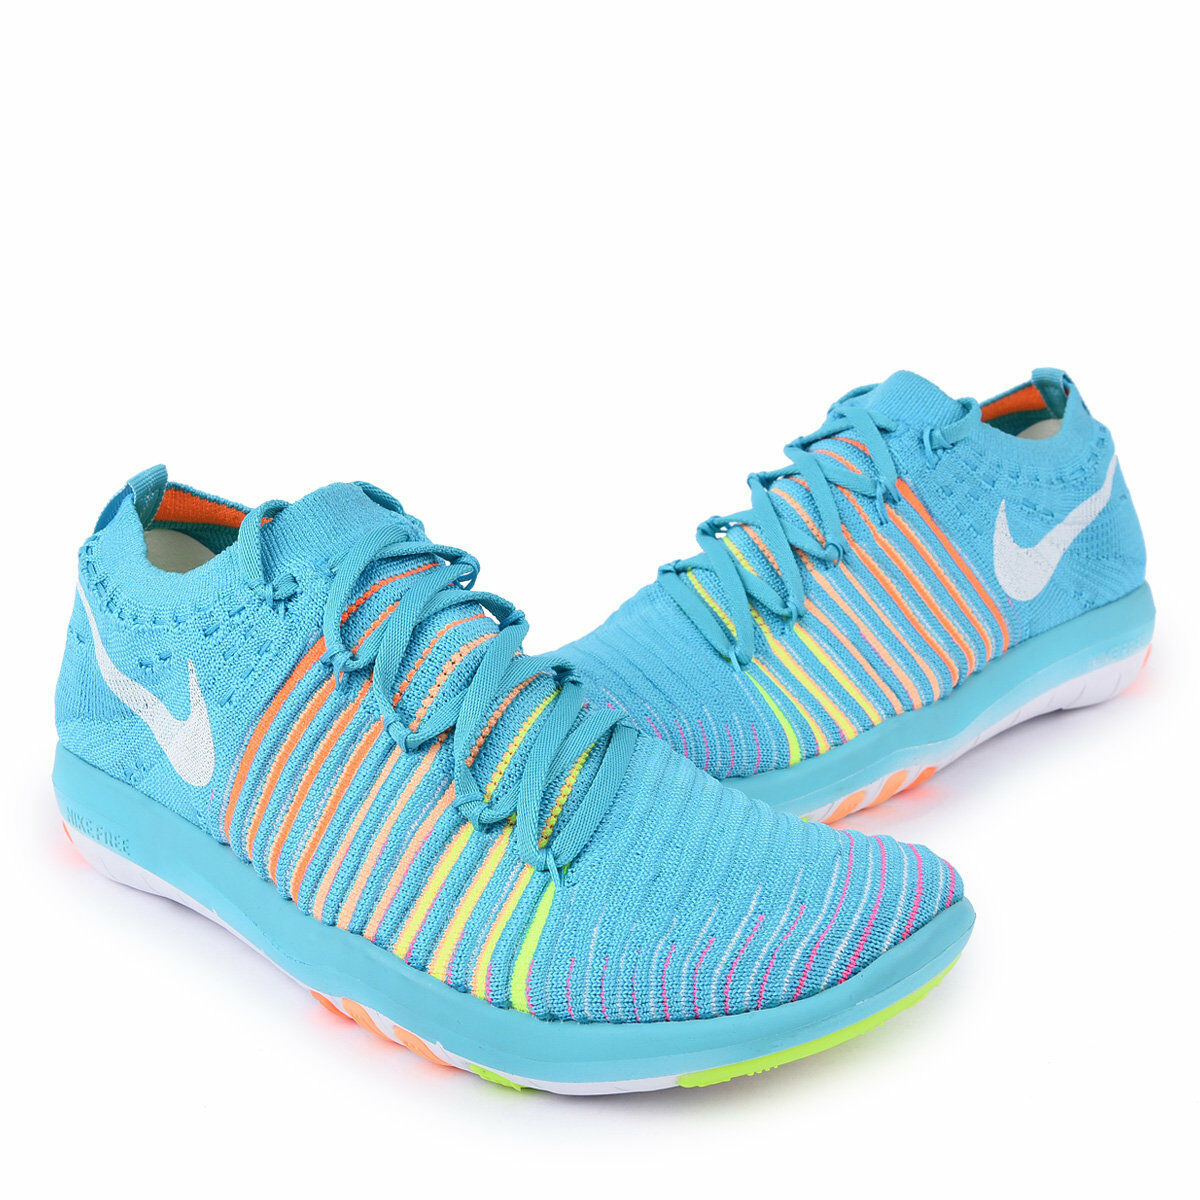 Nike WMNS Free Transform Transform Transform Flyknit Running shoes Trainers 833410 400  6.5 EU 37.5 788b3d